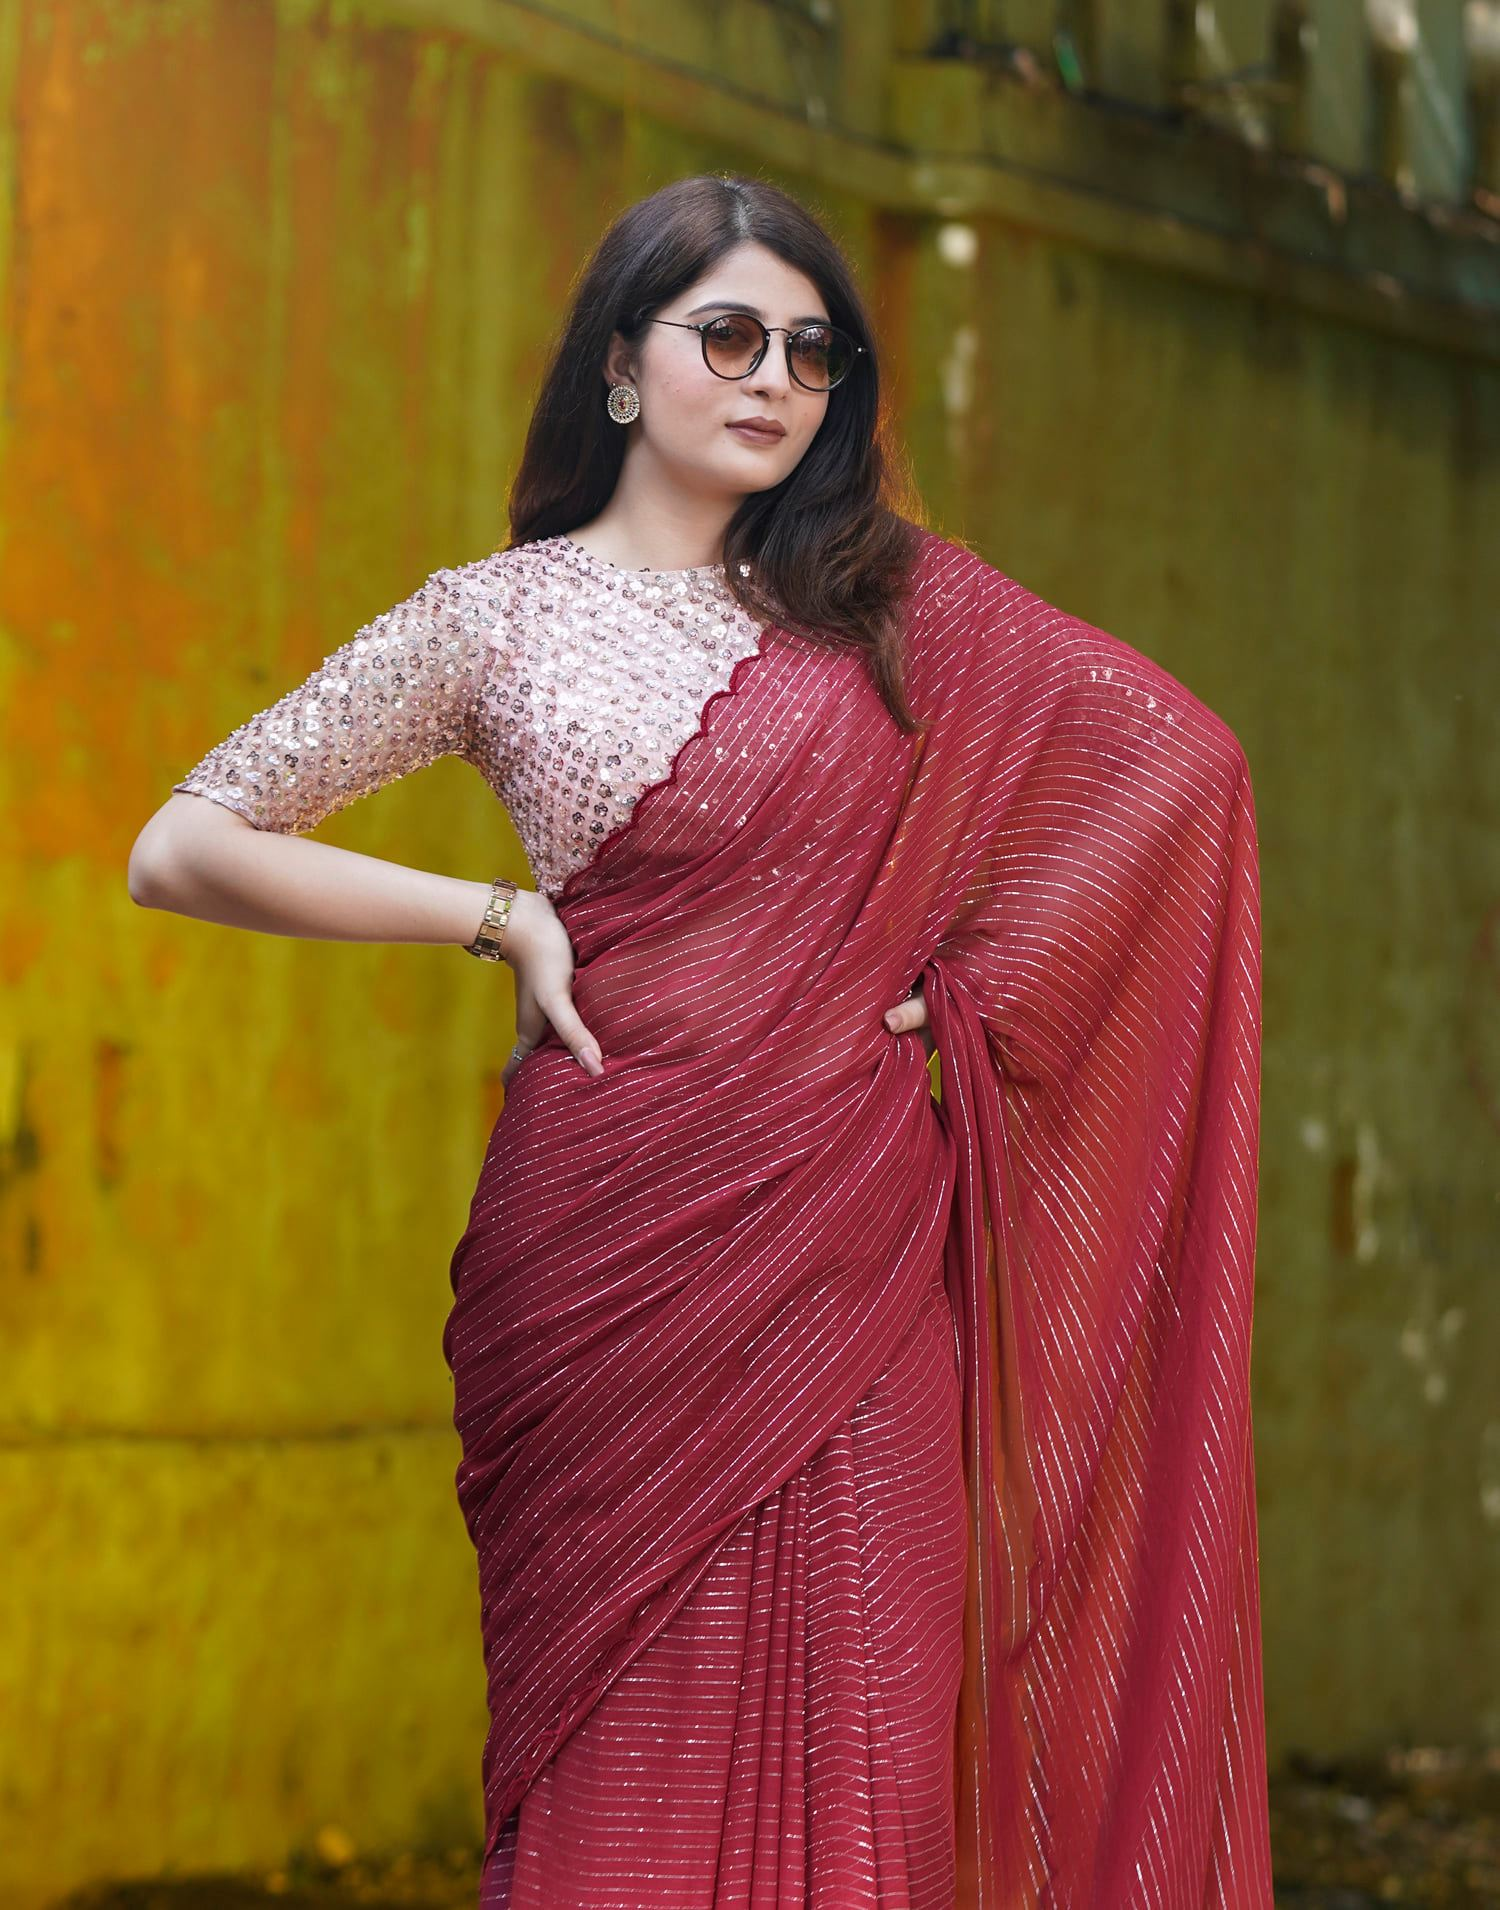 Wine Stripes. Price - Rs 6500. Wine silver zari striped georgette saree finished with scallop border and paired with a champagne sequin blouse. Unstitched blouse piece - Sequin and pearl worked blouse piece. Please whatsapp for orders - 7995481918 Email - privacollective@gmail.com. 2021-10-20